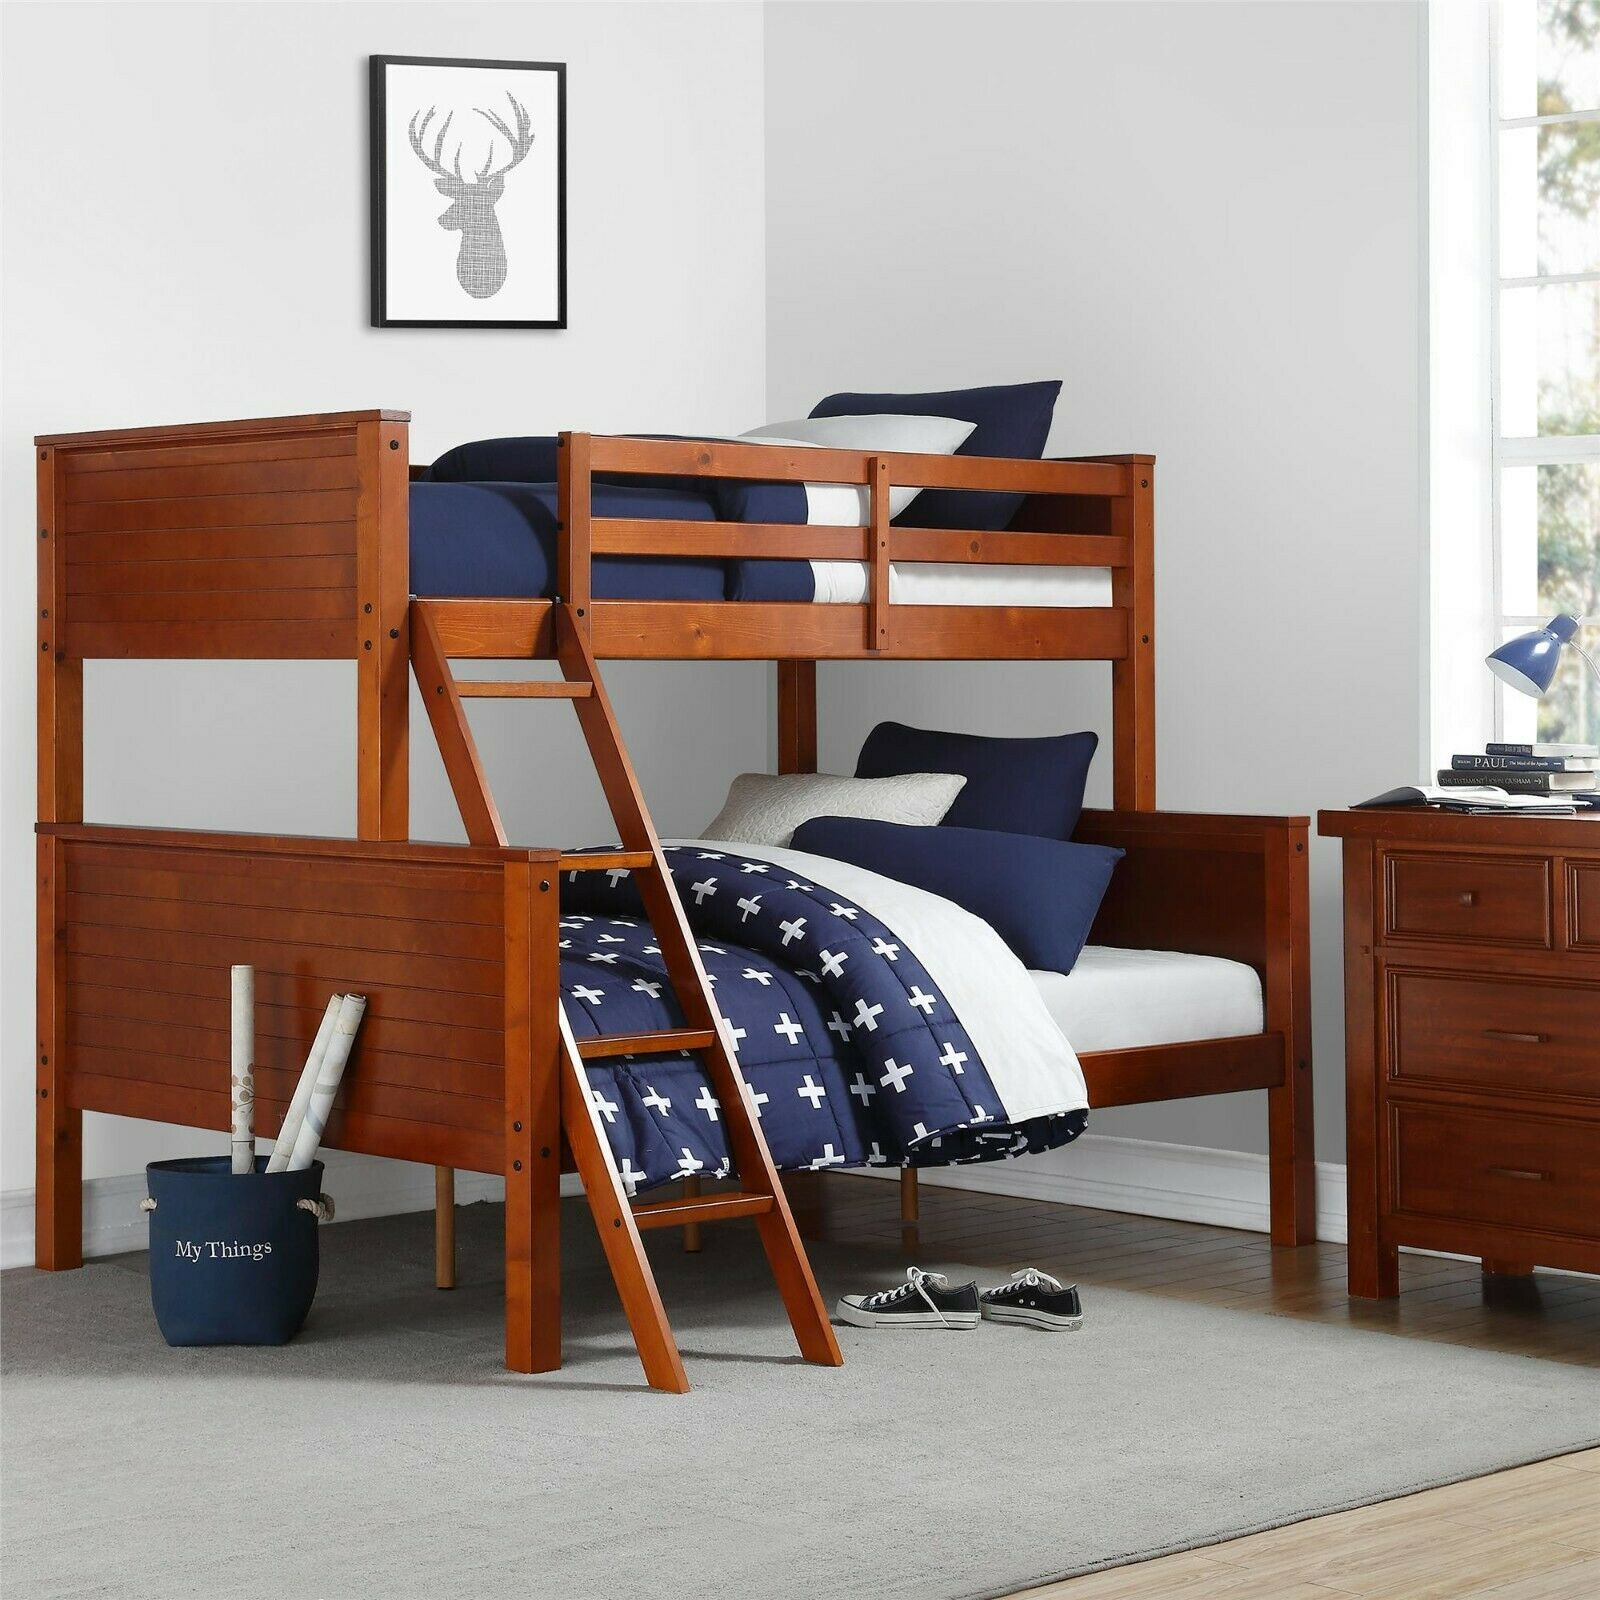 Bunk Beds Twin Over Full For Kids Adults Convertible Wood Walnut